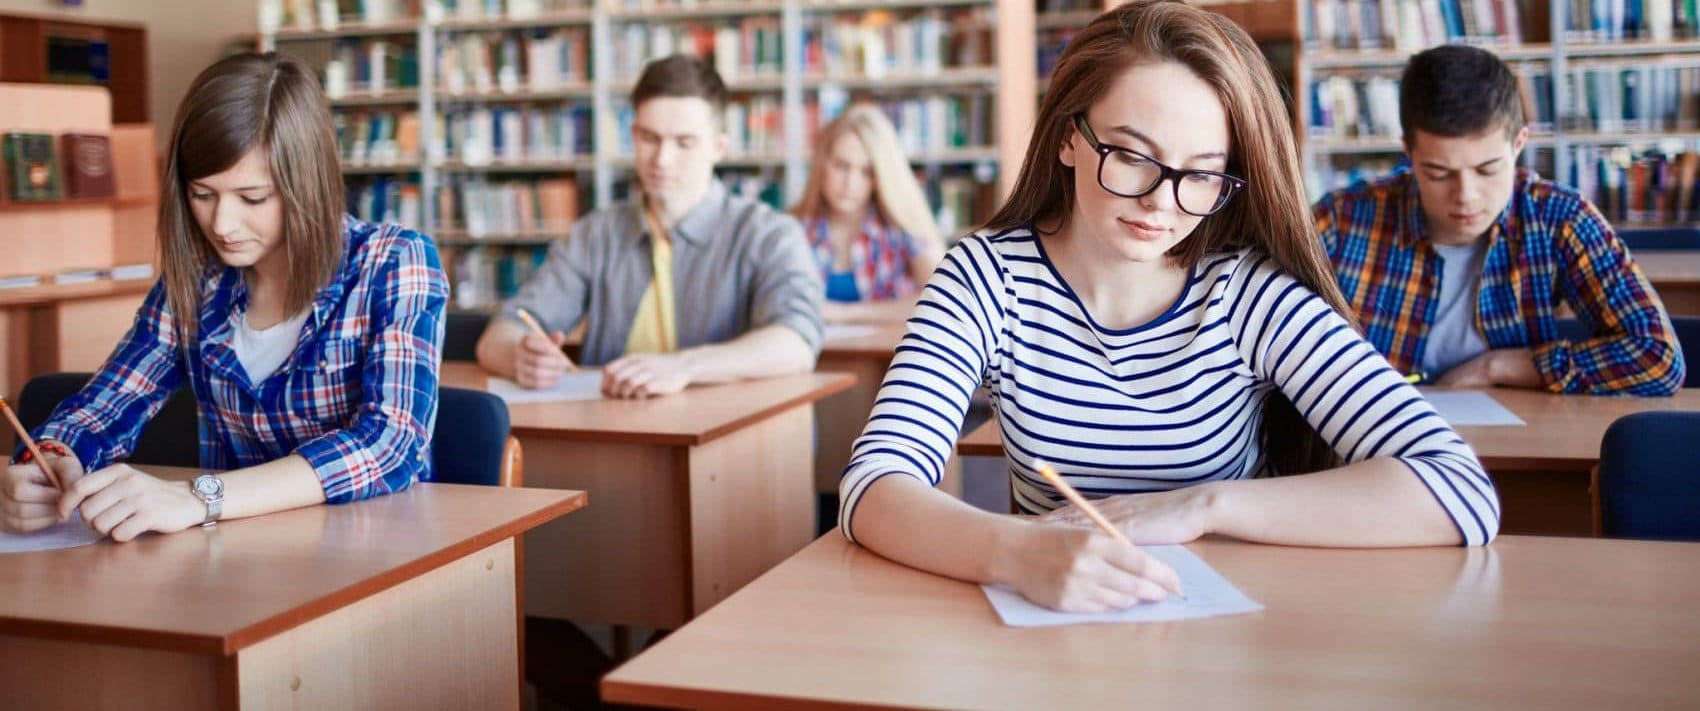 ACT Diagnostic Test & Report   Prep Zone Academy